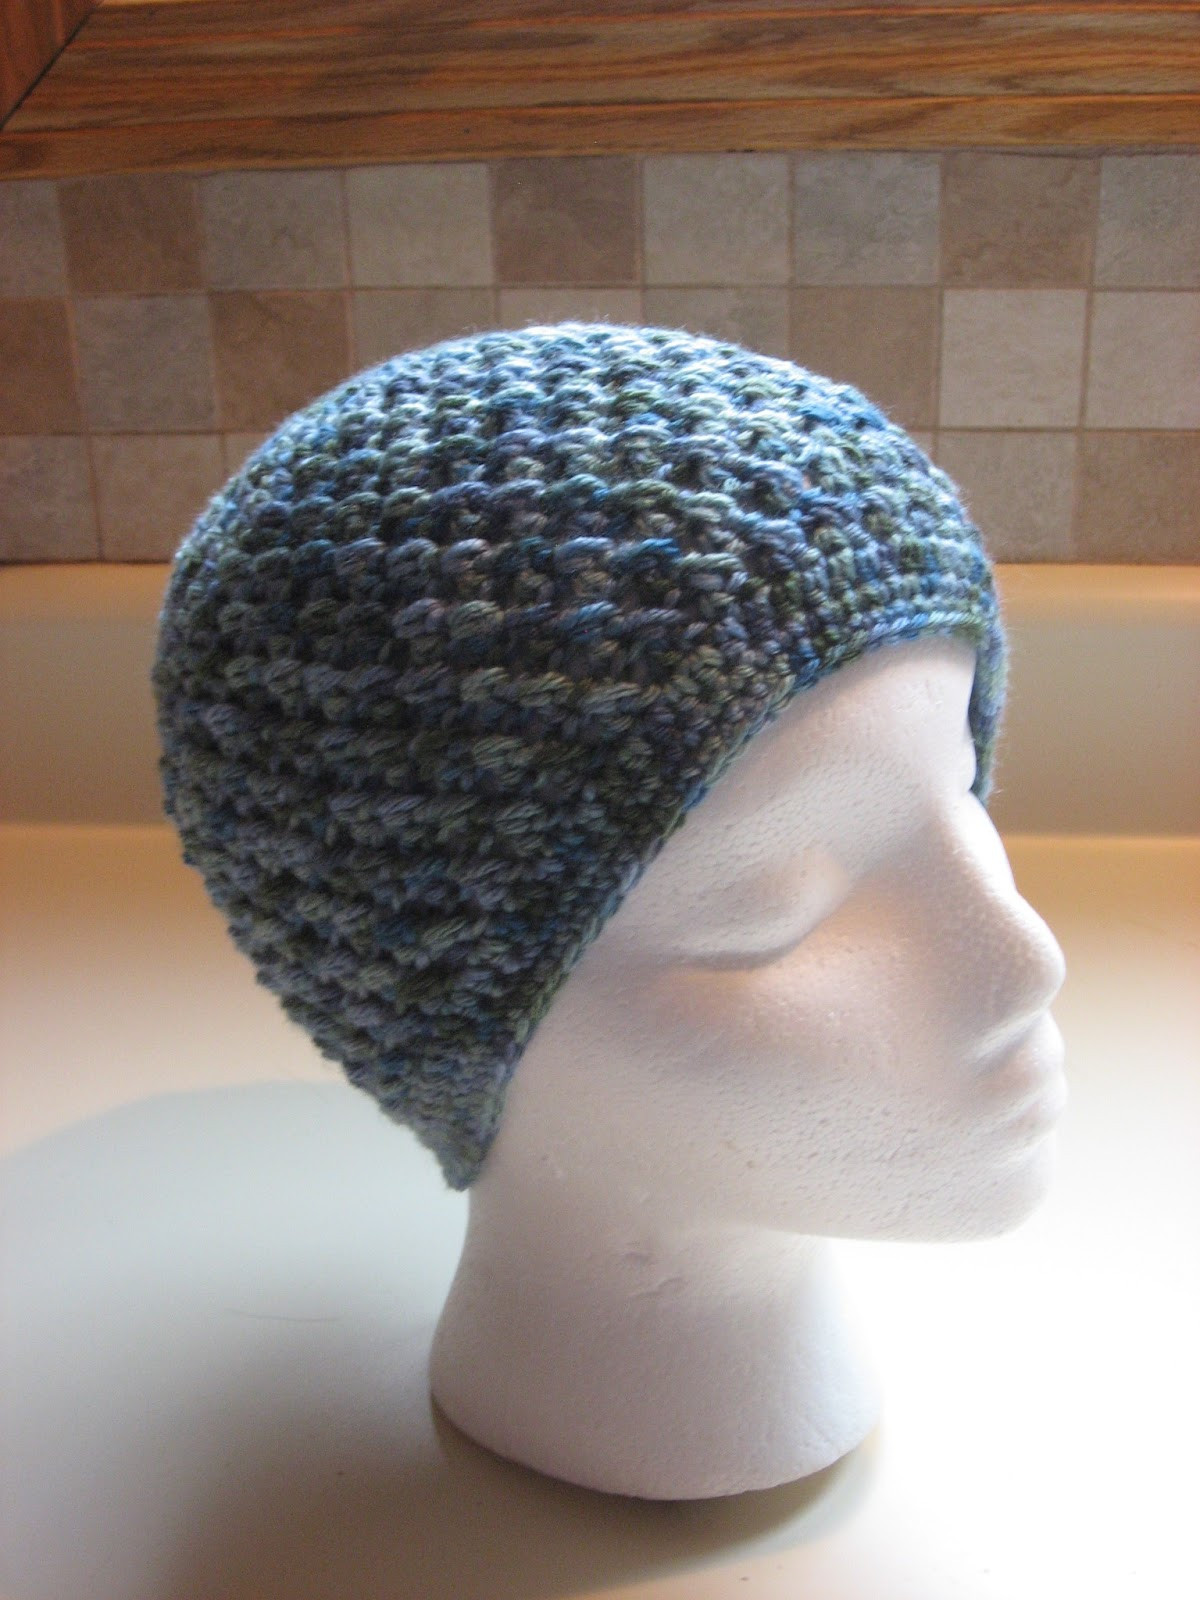 Chemo Cap Crochet Pattern Inspirational Crochet Projects More Chemo Hats Of Brilliant 48 Pictures Chemo Cap Crochet Pattern